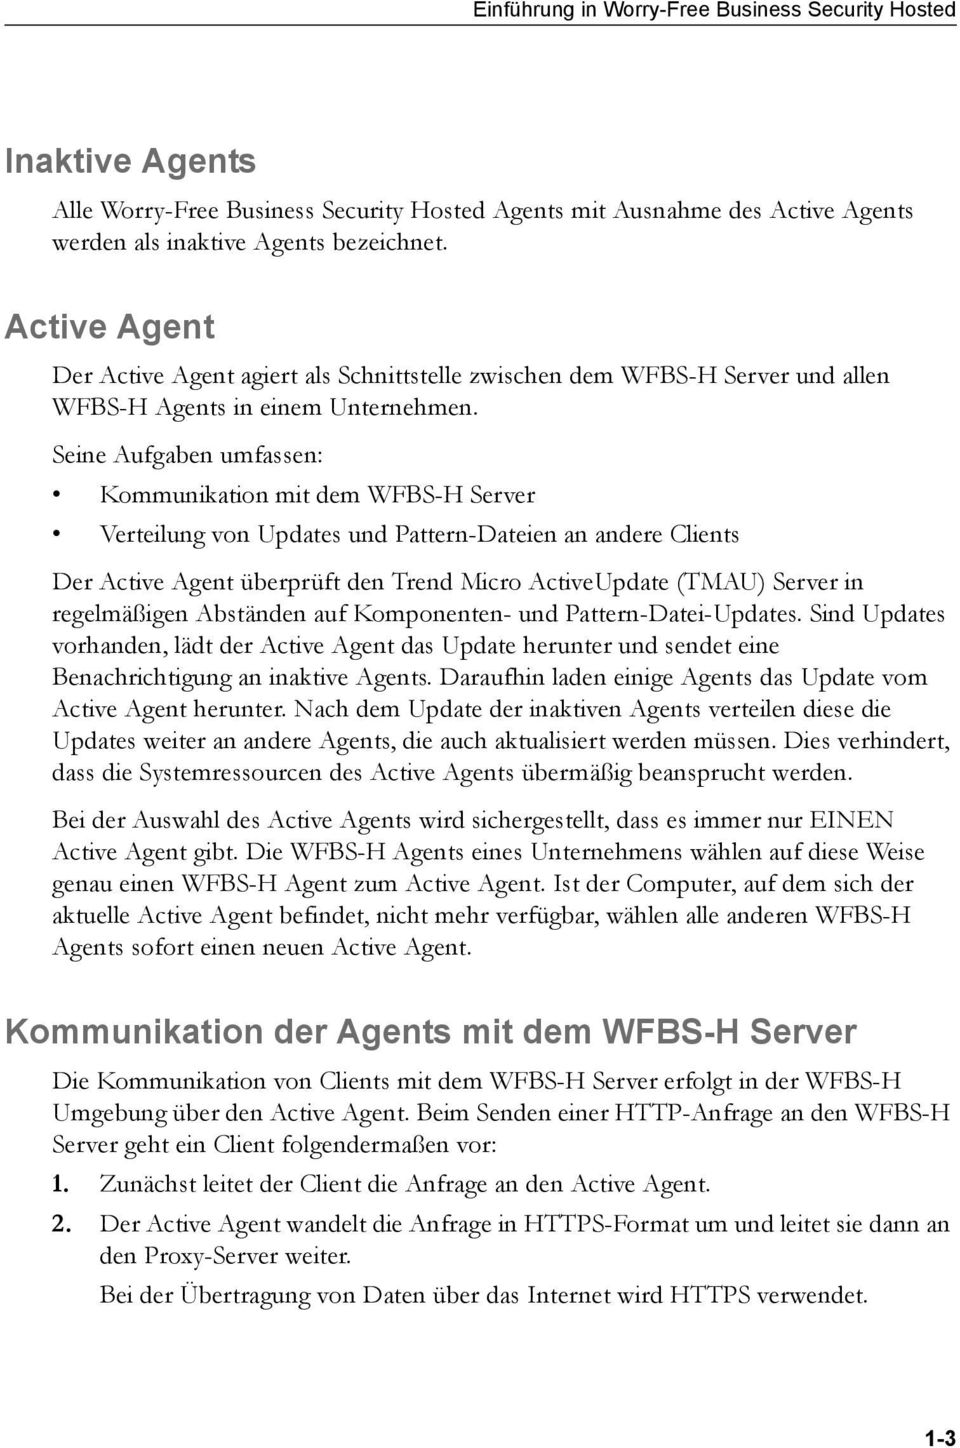 Seine Aufgaben umfassen: Kommunikation mit dem WFBS-H Server Verteilung von Updates und Pattern-Dateien an andere Clients Der Active Agent überprüft den Trend Micro ActiveUpdate (TMAU) Server in